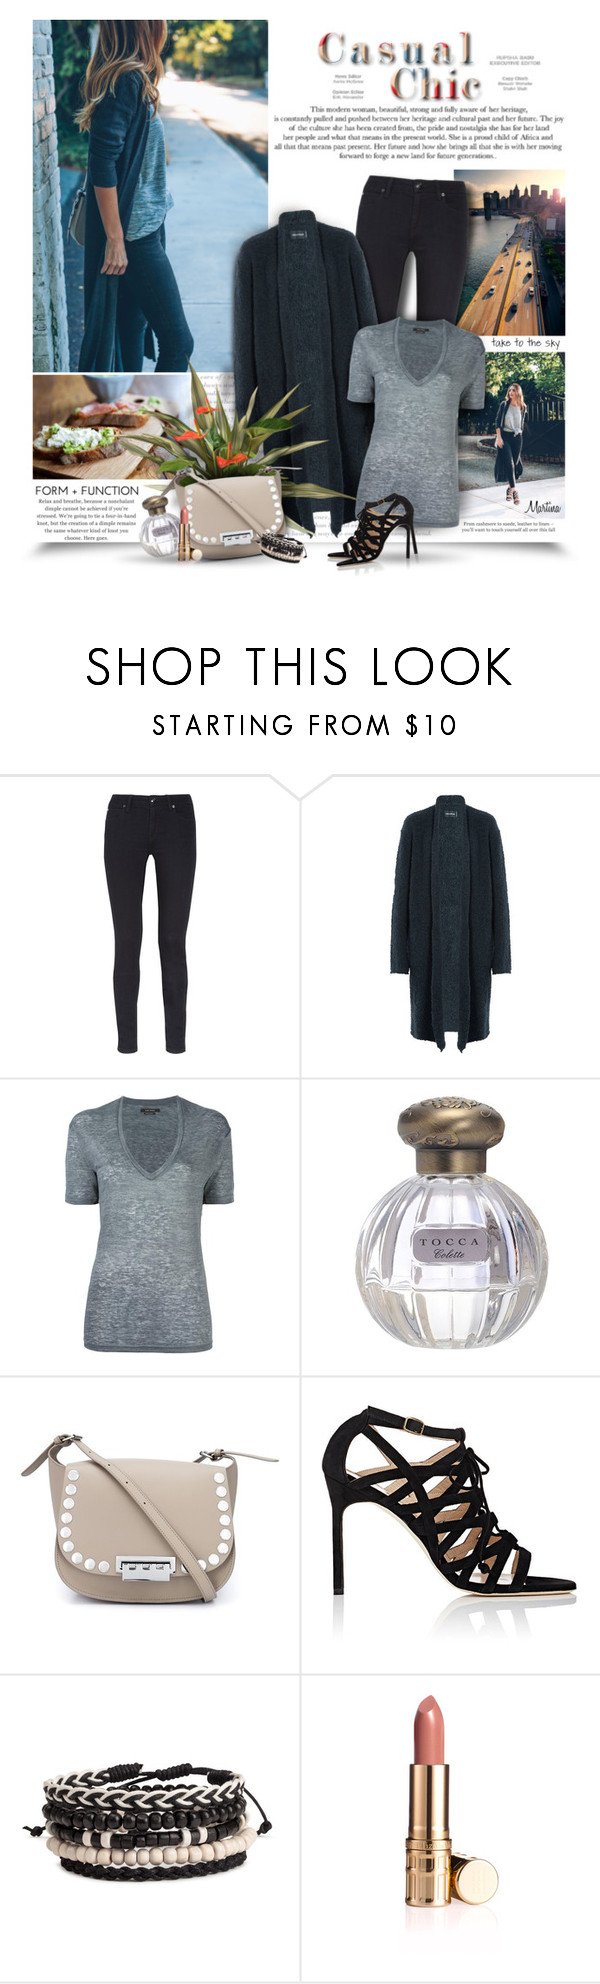 """""""Casual Chic"""" by thewondersoffashion ❤ liked on Polyvore featuring Burberry, Zadig & Voltaire, Isabel Marant, Tocca, ZAC Zac Posen and Manolo Blahnik"""